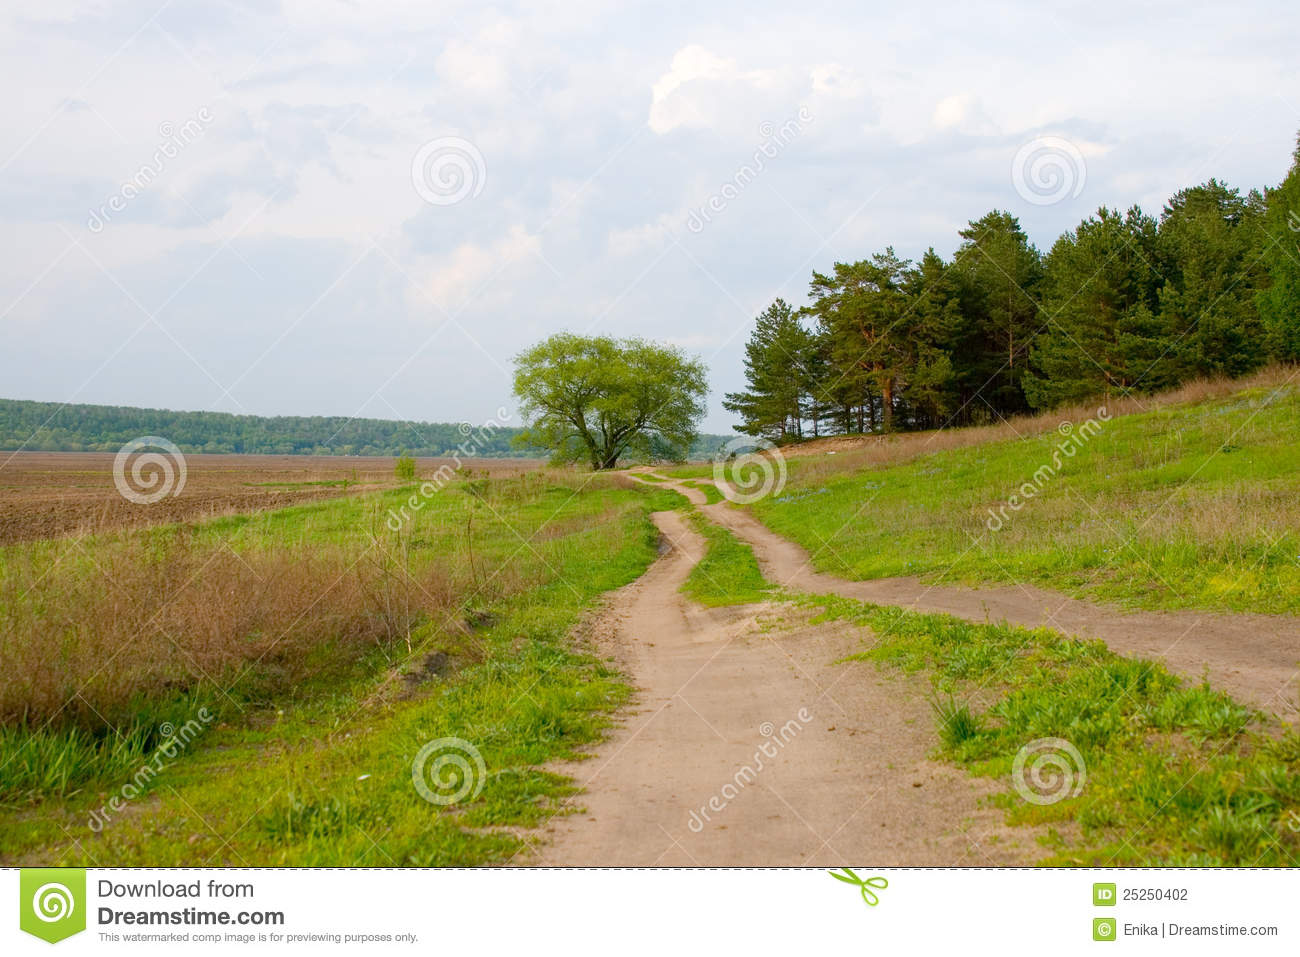 Dirt Road And The Old Oak Tree Stock Photography - Image: 25250402: dreamstime.com/stock-photography-dirt-road-old-oak-tree-image25250402